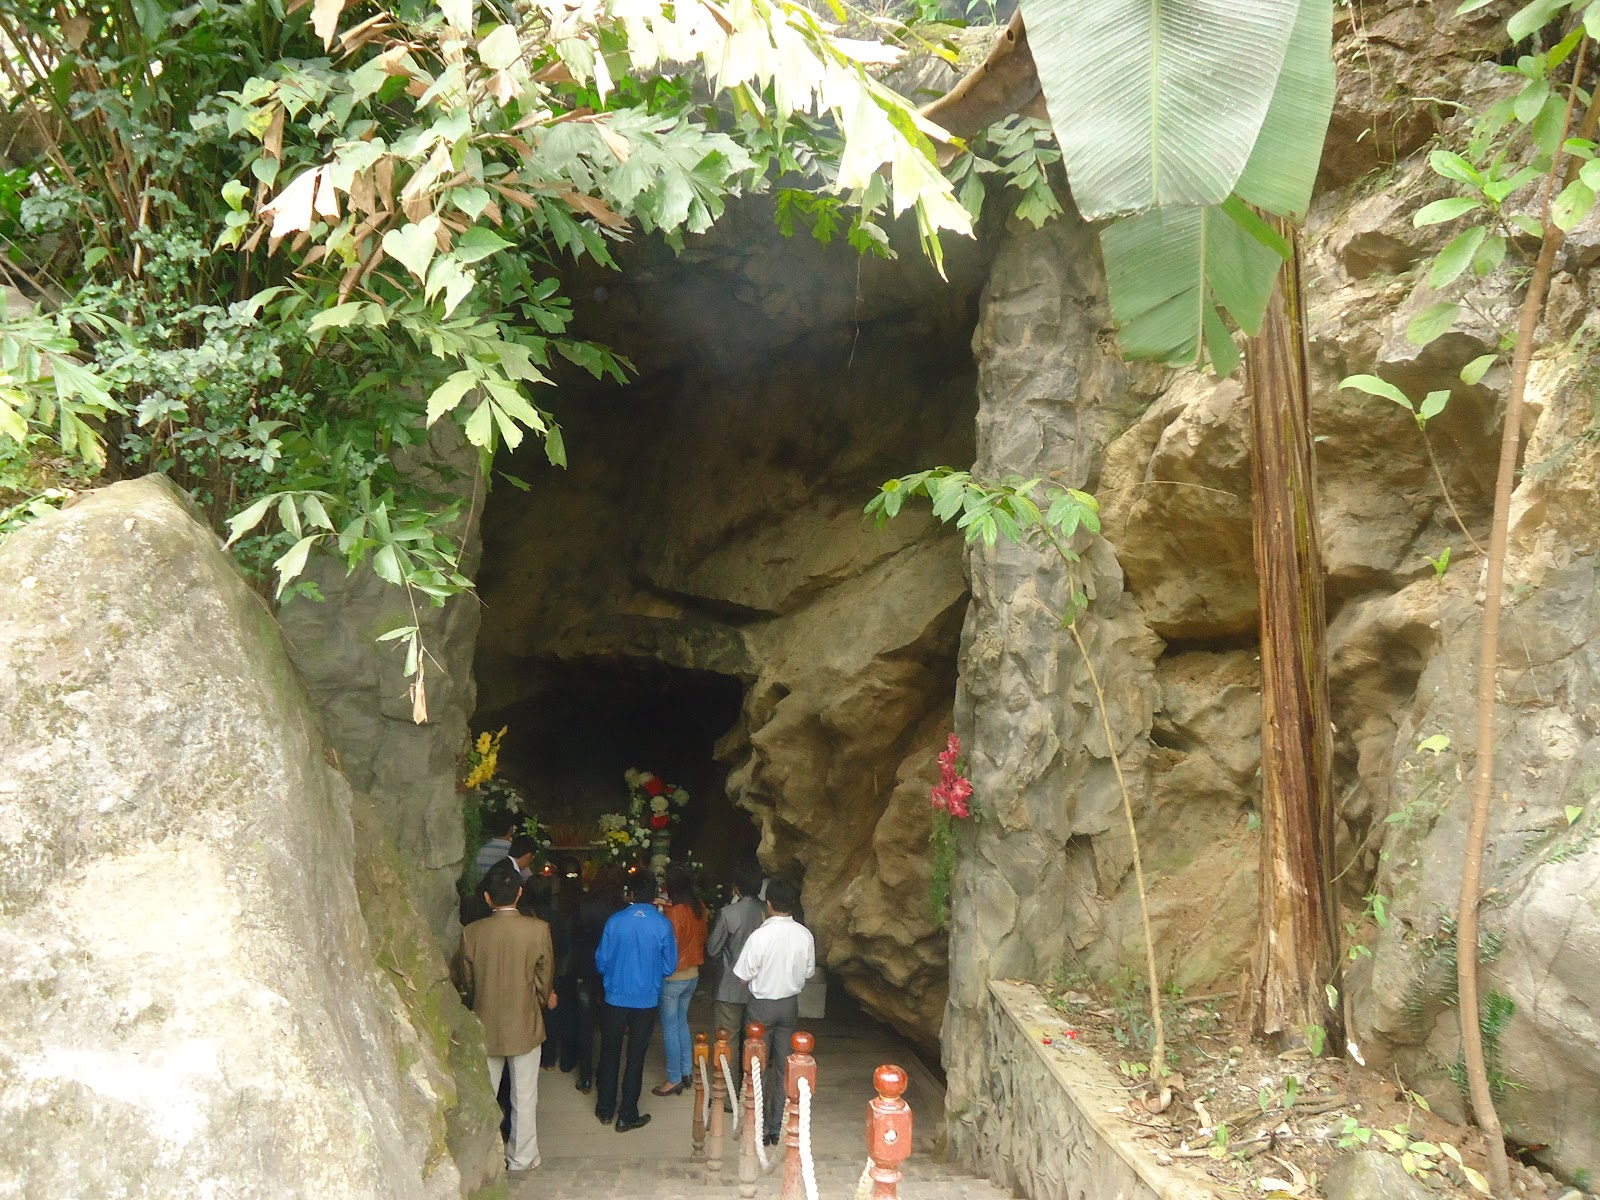 The Eight girls cave tam co quang binh (1)